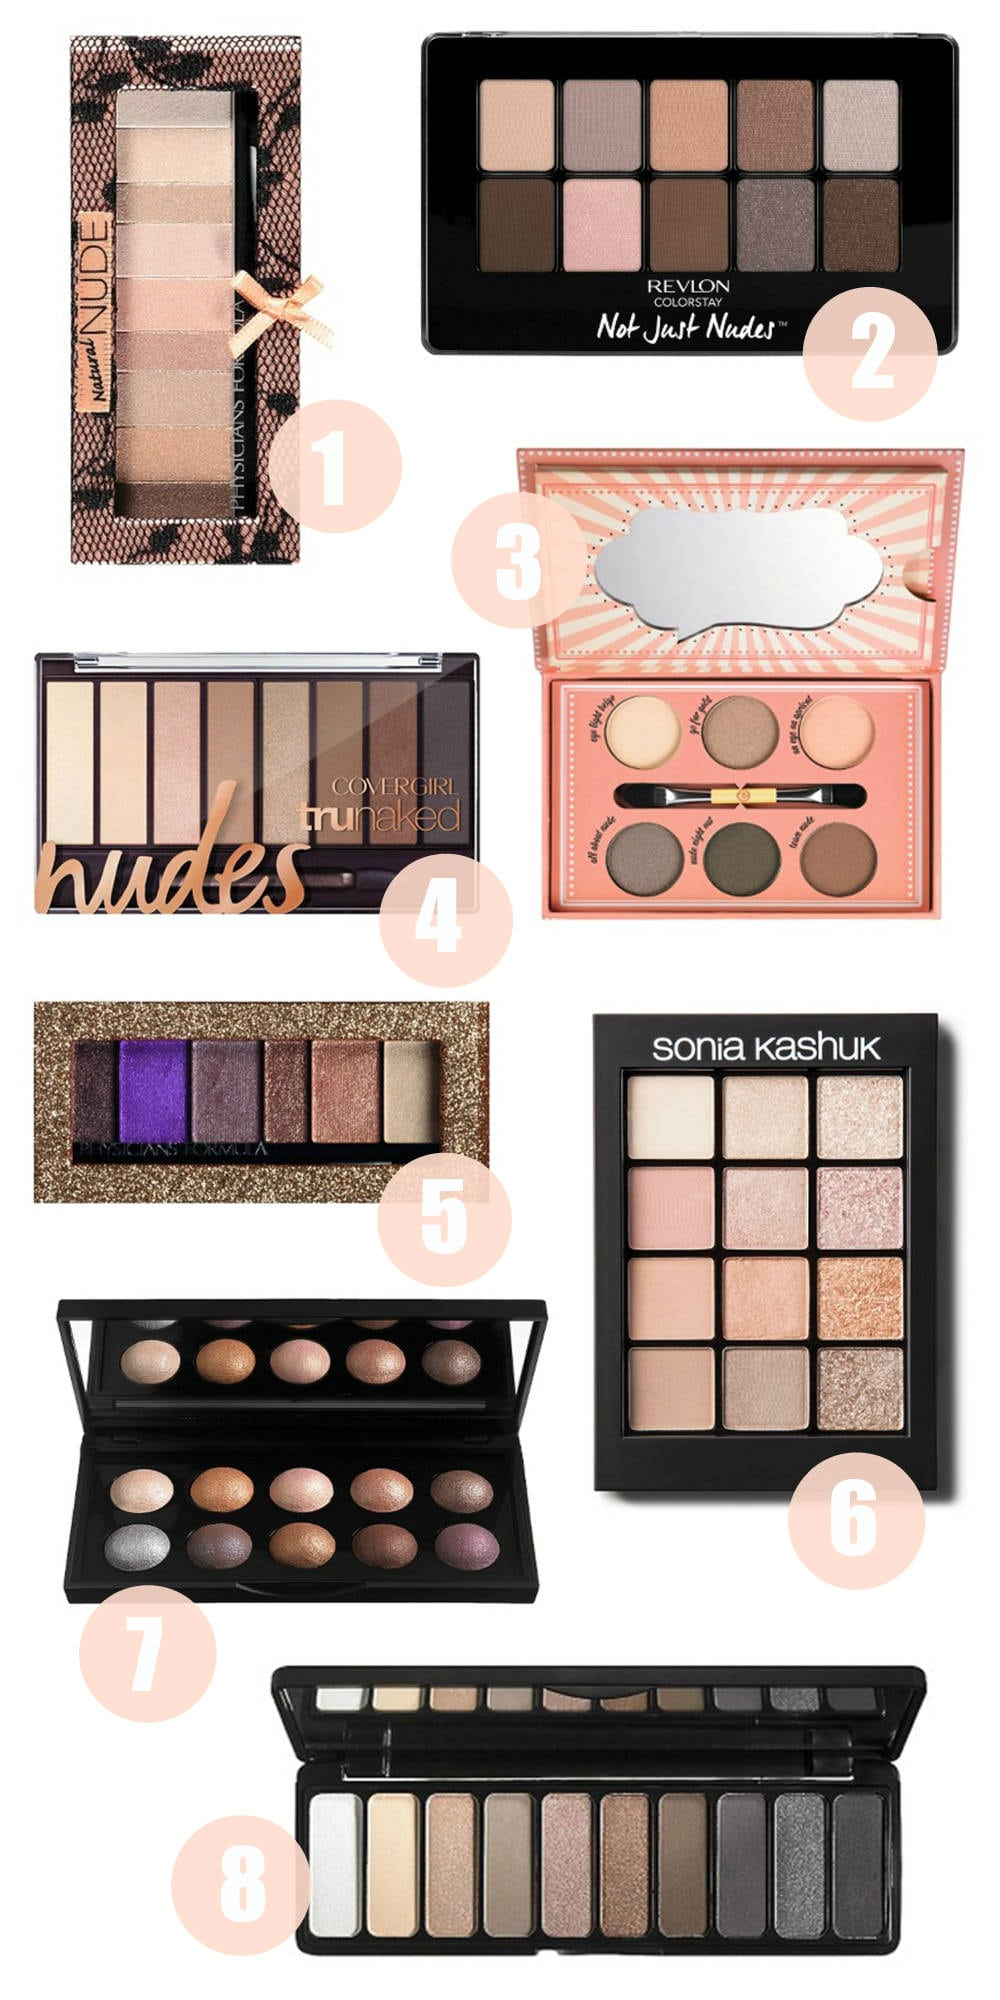 a-drugstore-eyeshadow-palettes-for-less